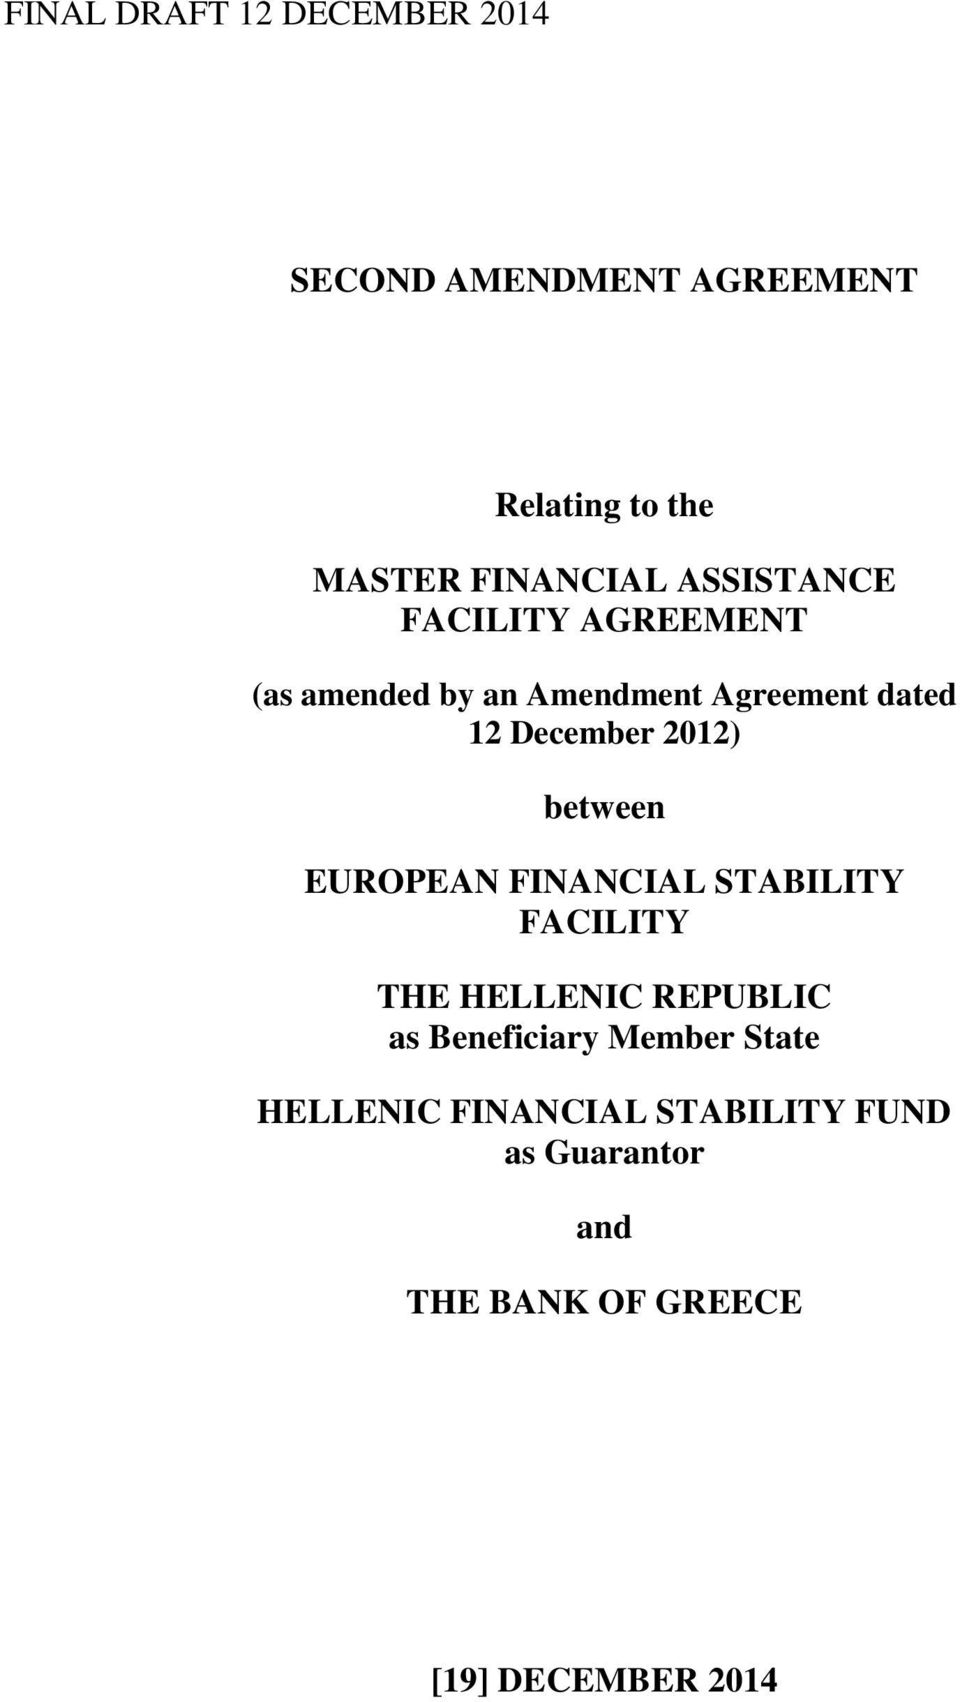 between EUROPEAN FINANCIAL STABILITY FACILITY THE HELLENIC REPUBLIC as Beneficiary Member